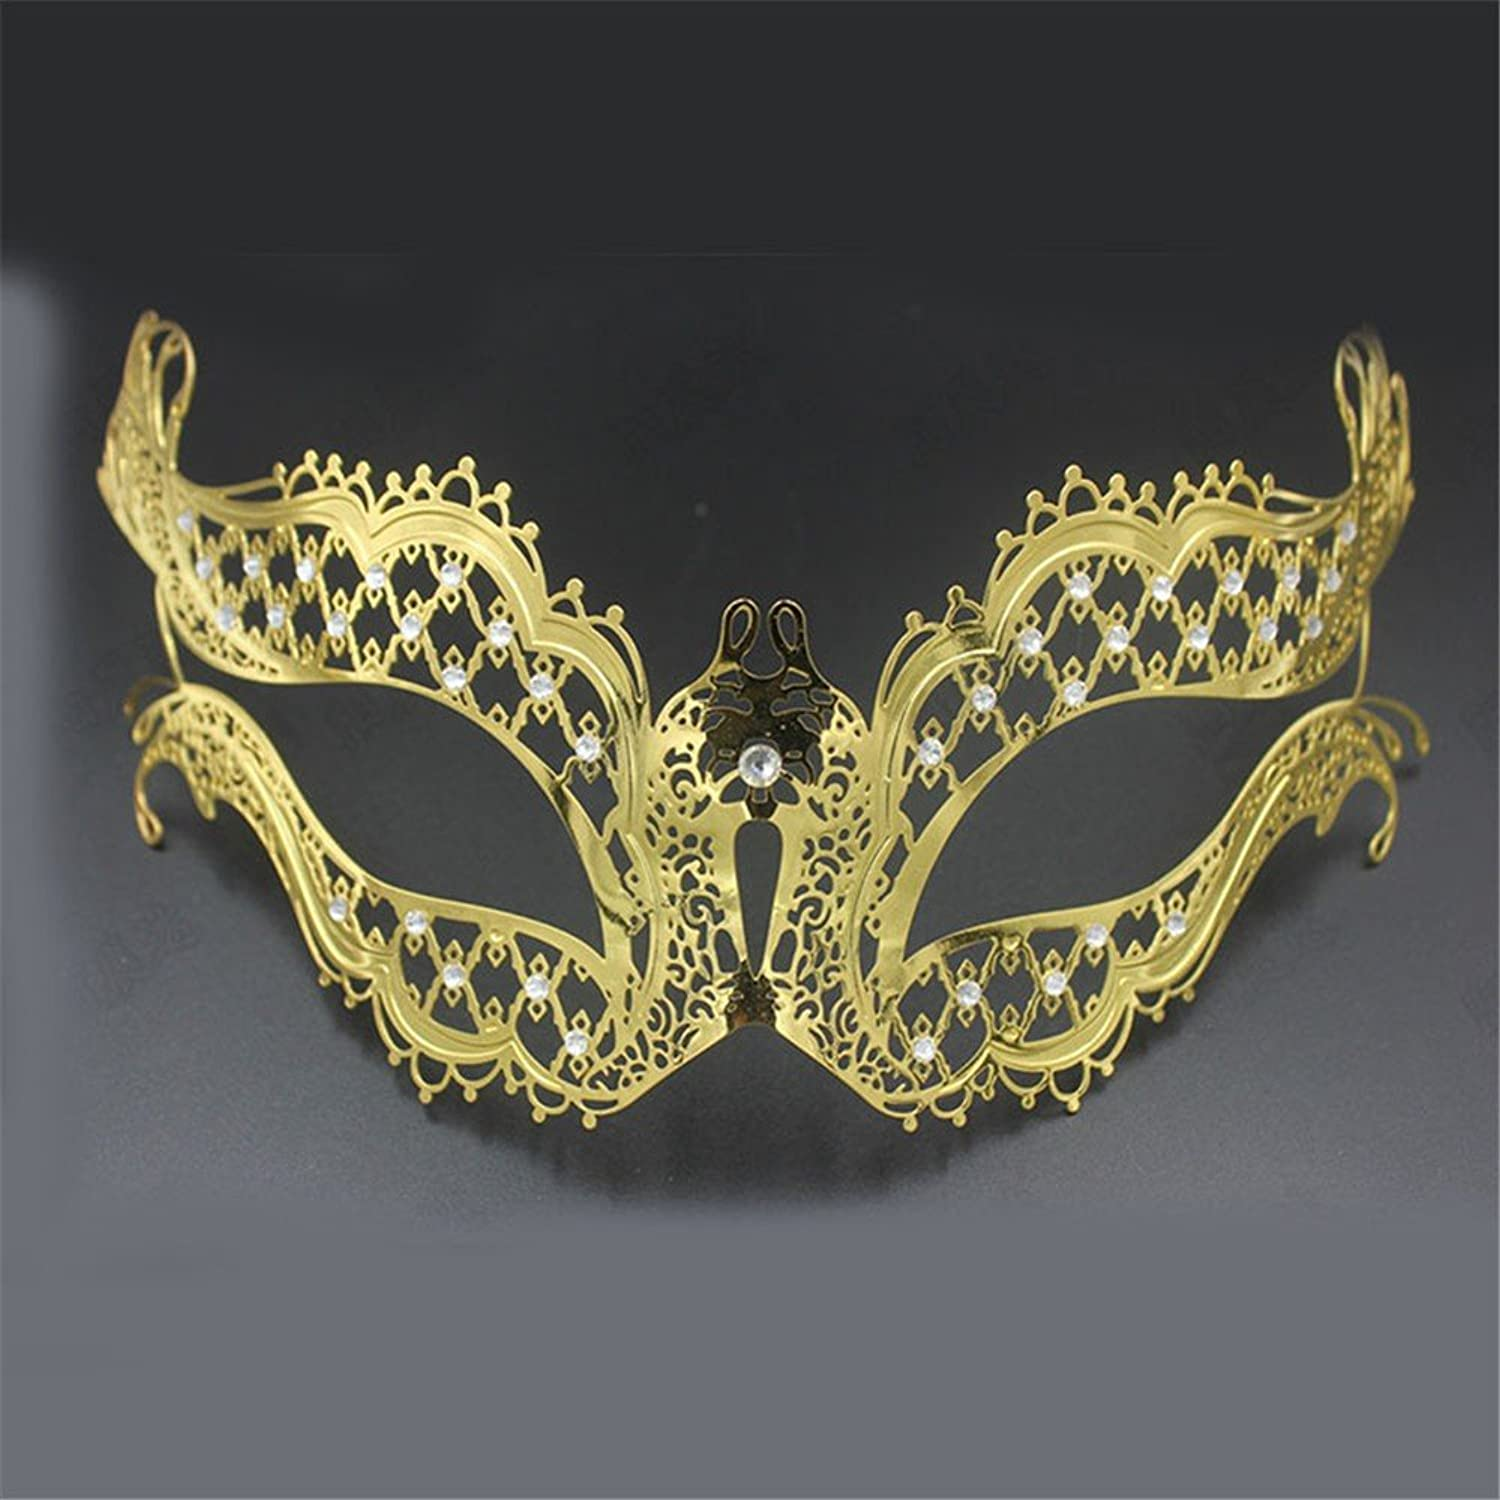 Mardi Gras Party Masquerade Mask,Metal Diamond Mask Cosplay Venice Mask Makeup Prom Mask Female Performance Party Dress Up Props gold Prom Masks